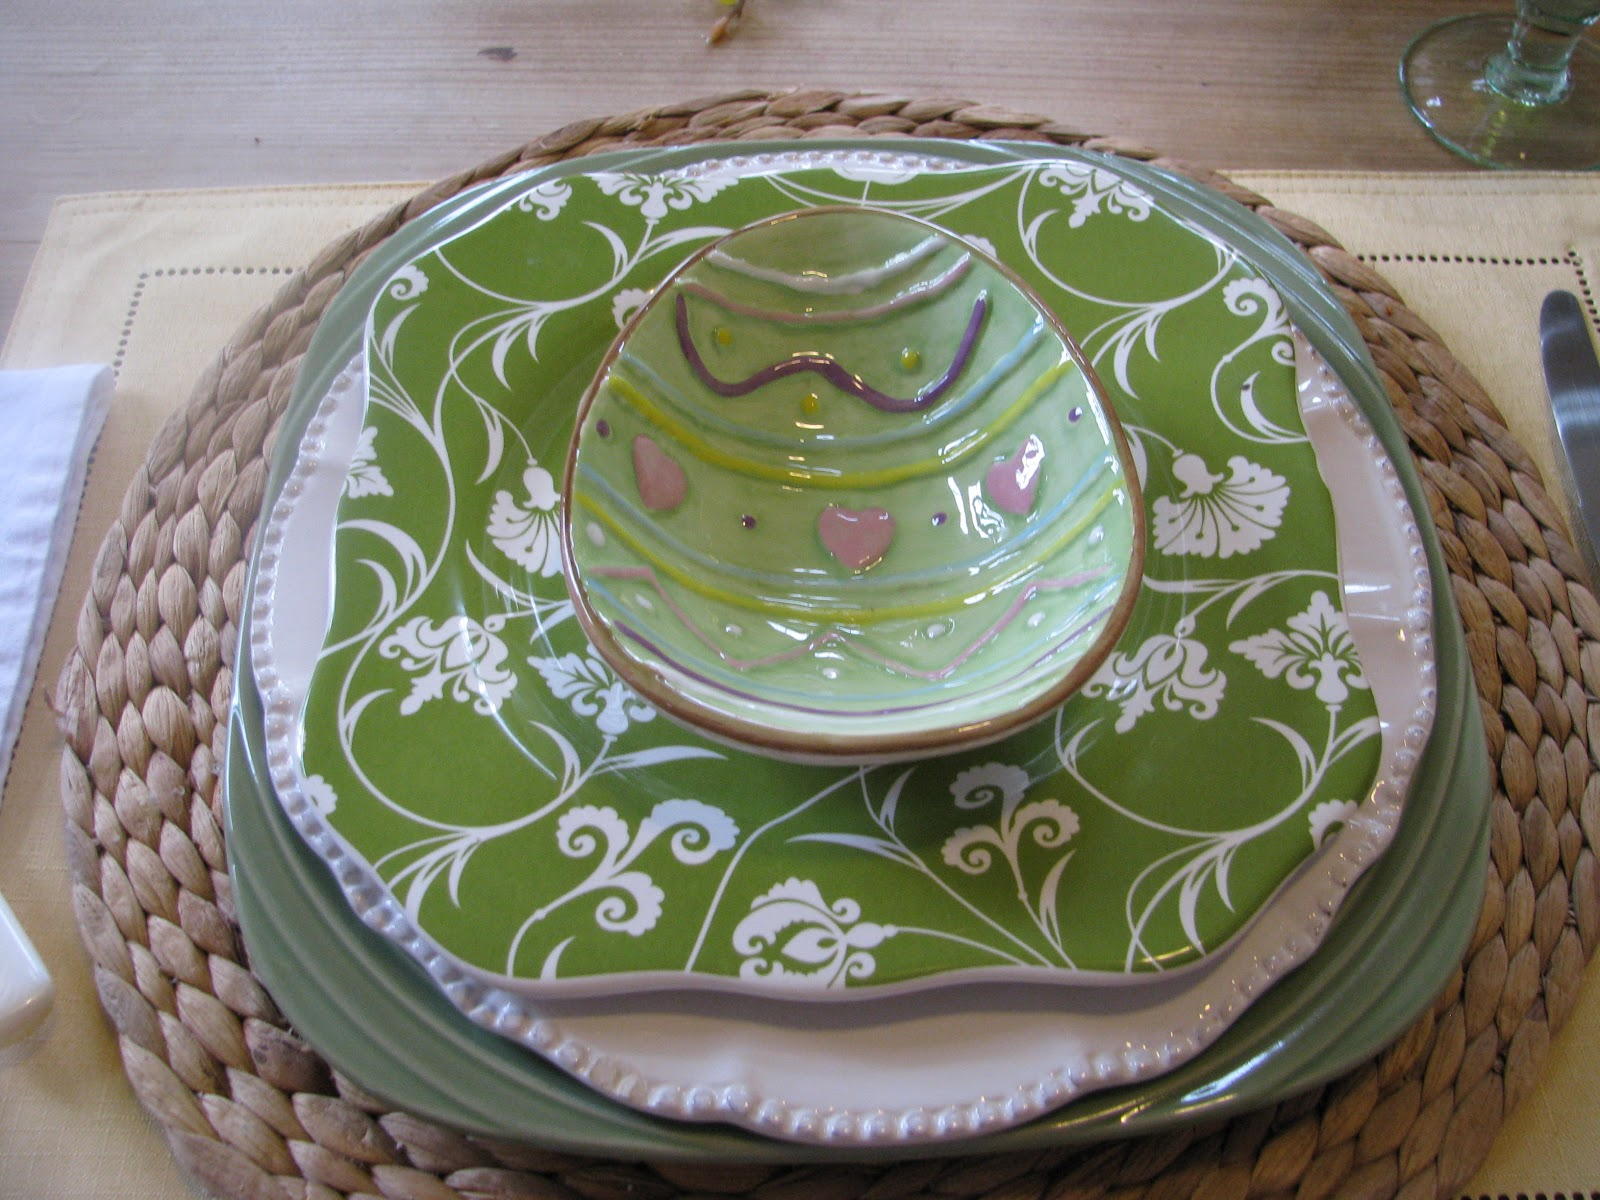 Irish Table Settings Designs By Pinky Our Everyday Spring Placesetting